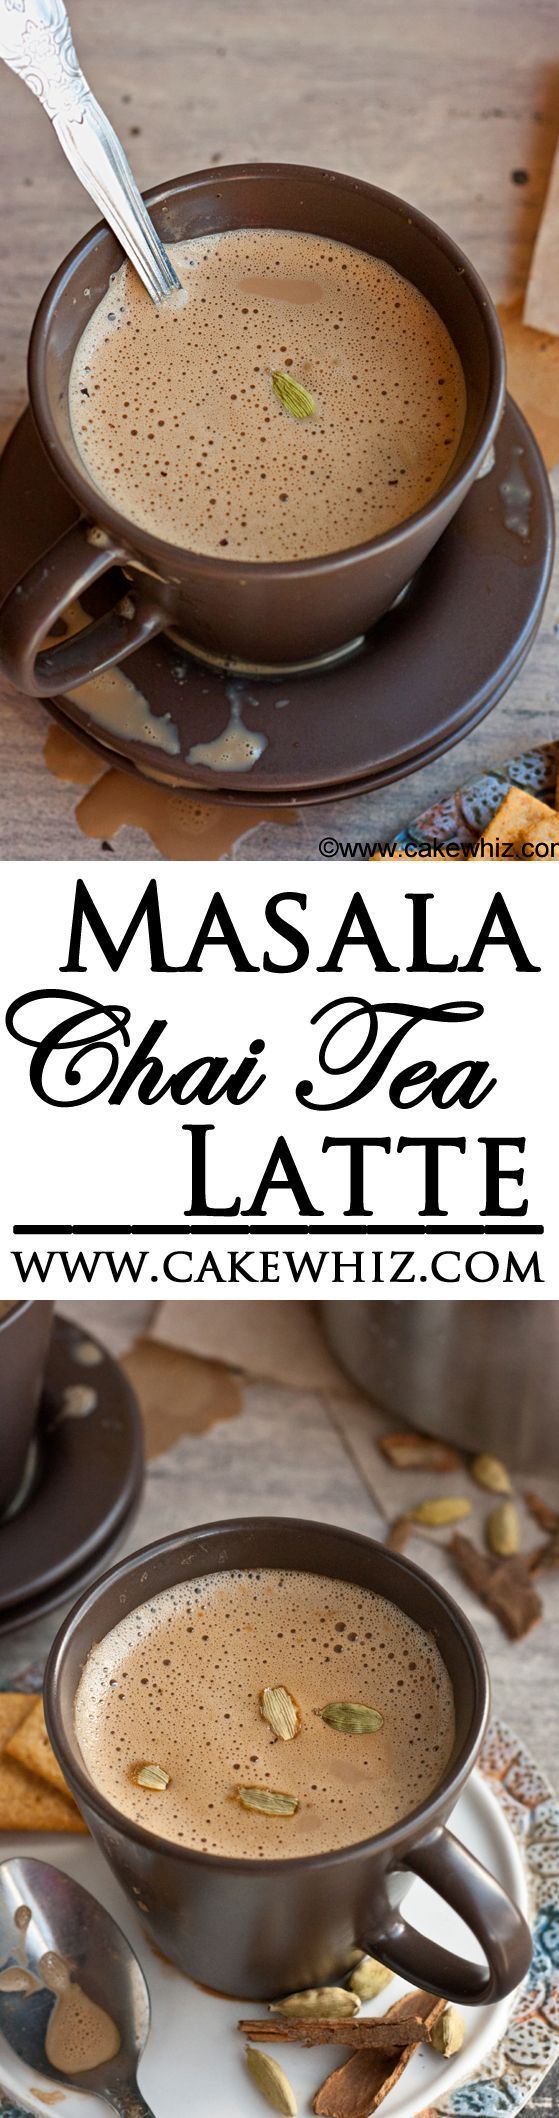 """Learn to make authentic MASALA CHAI TEA LATTE at home. It's rich, flavorful and has the perfect balance of spices.From cakewhiz.com"""